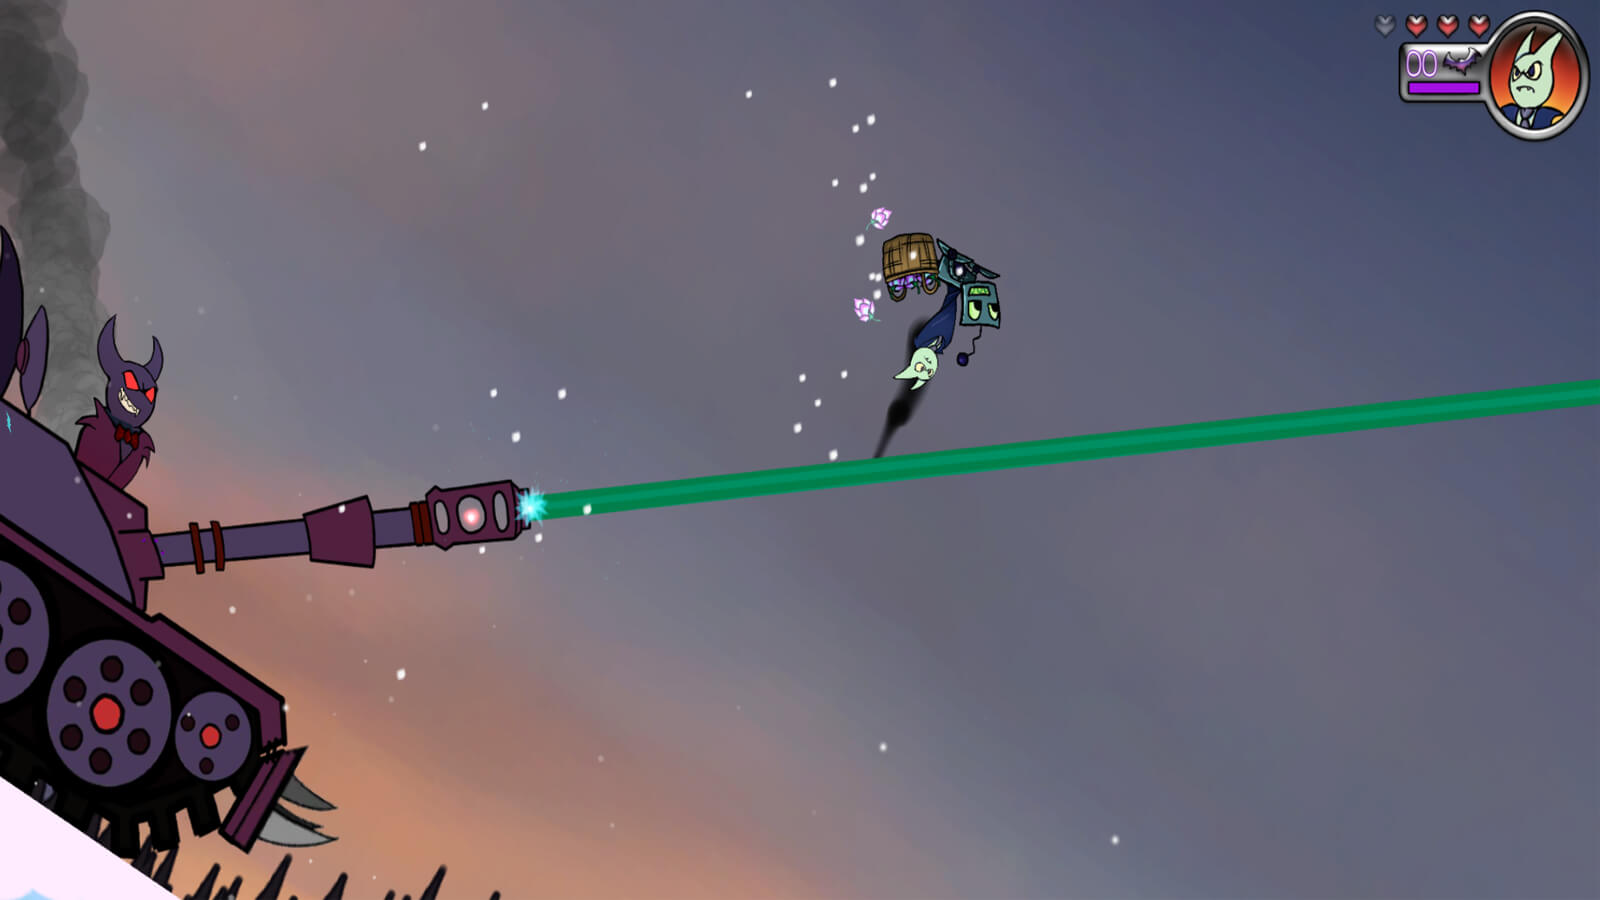 A villain in a tank shoots a green beam at Private Battede, who is flipping mid-air atop a robot.